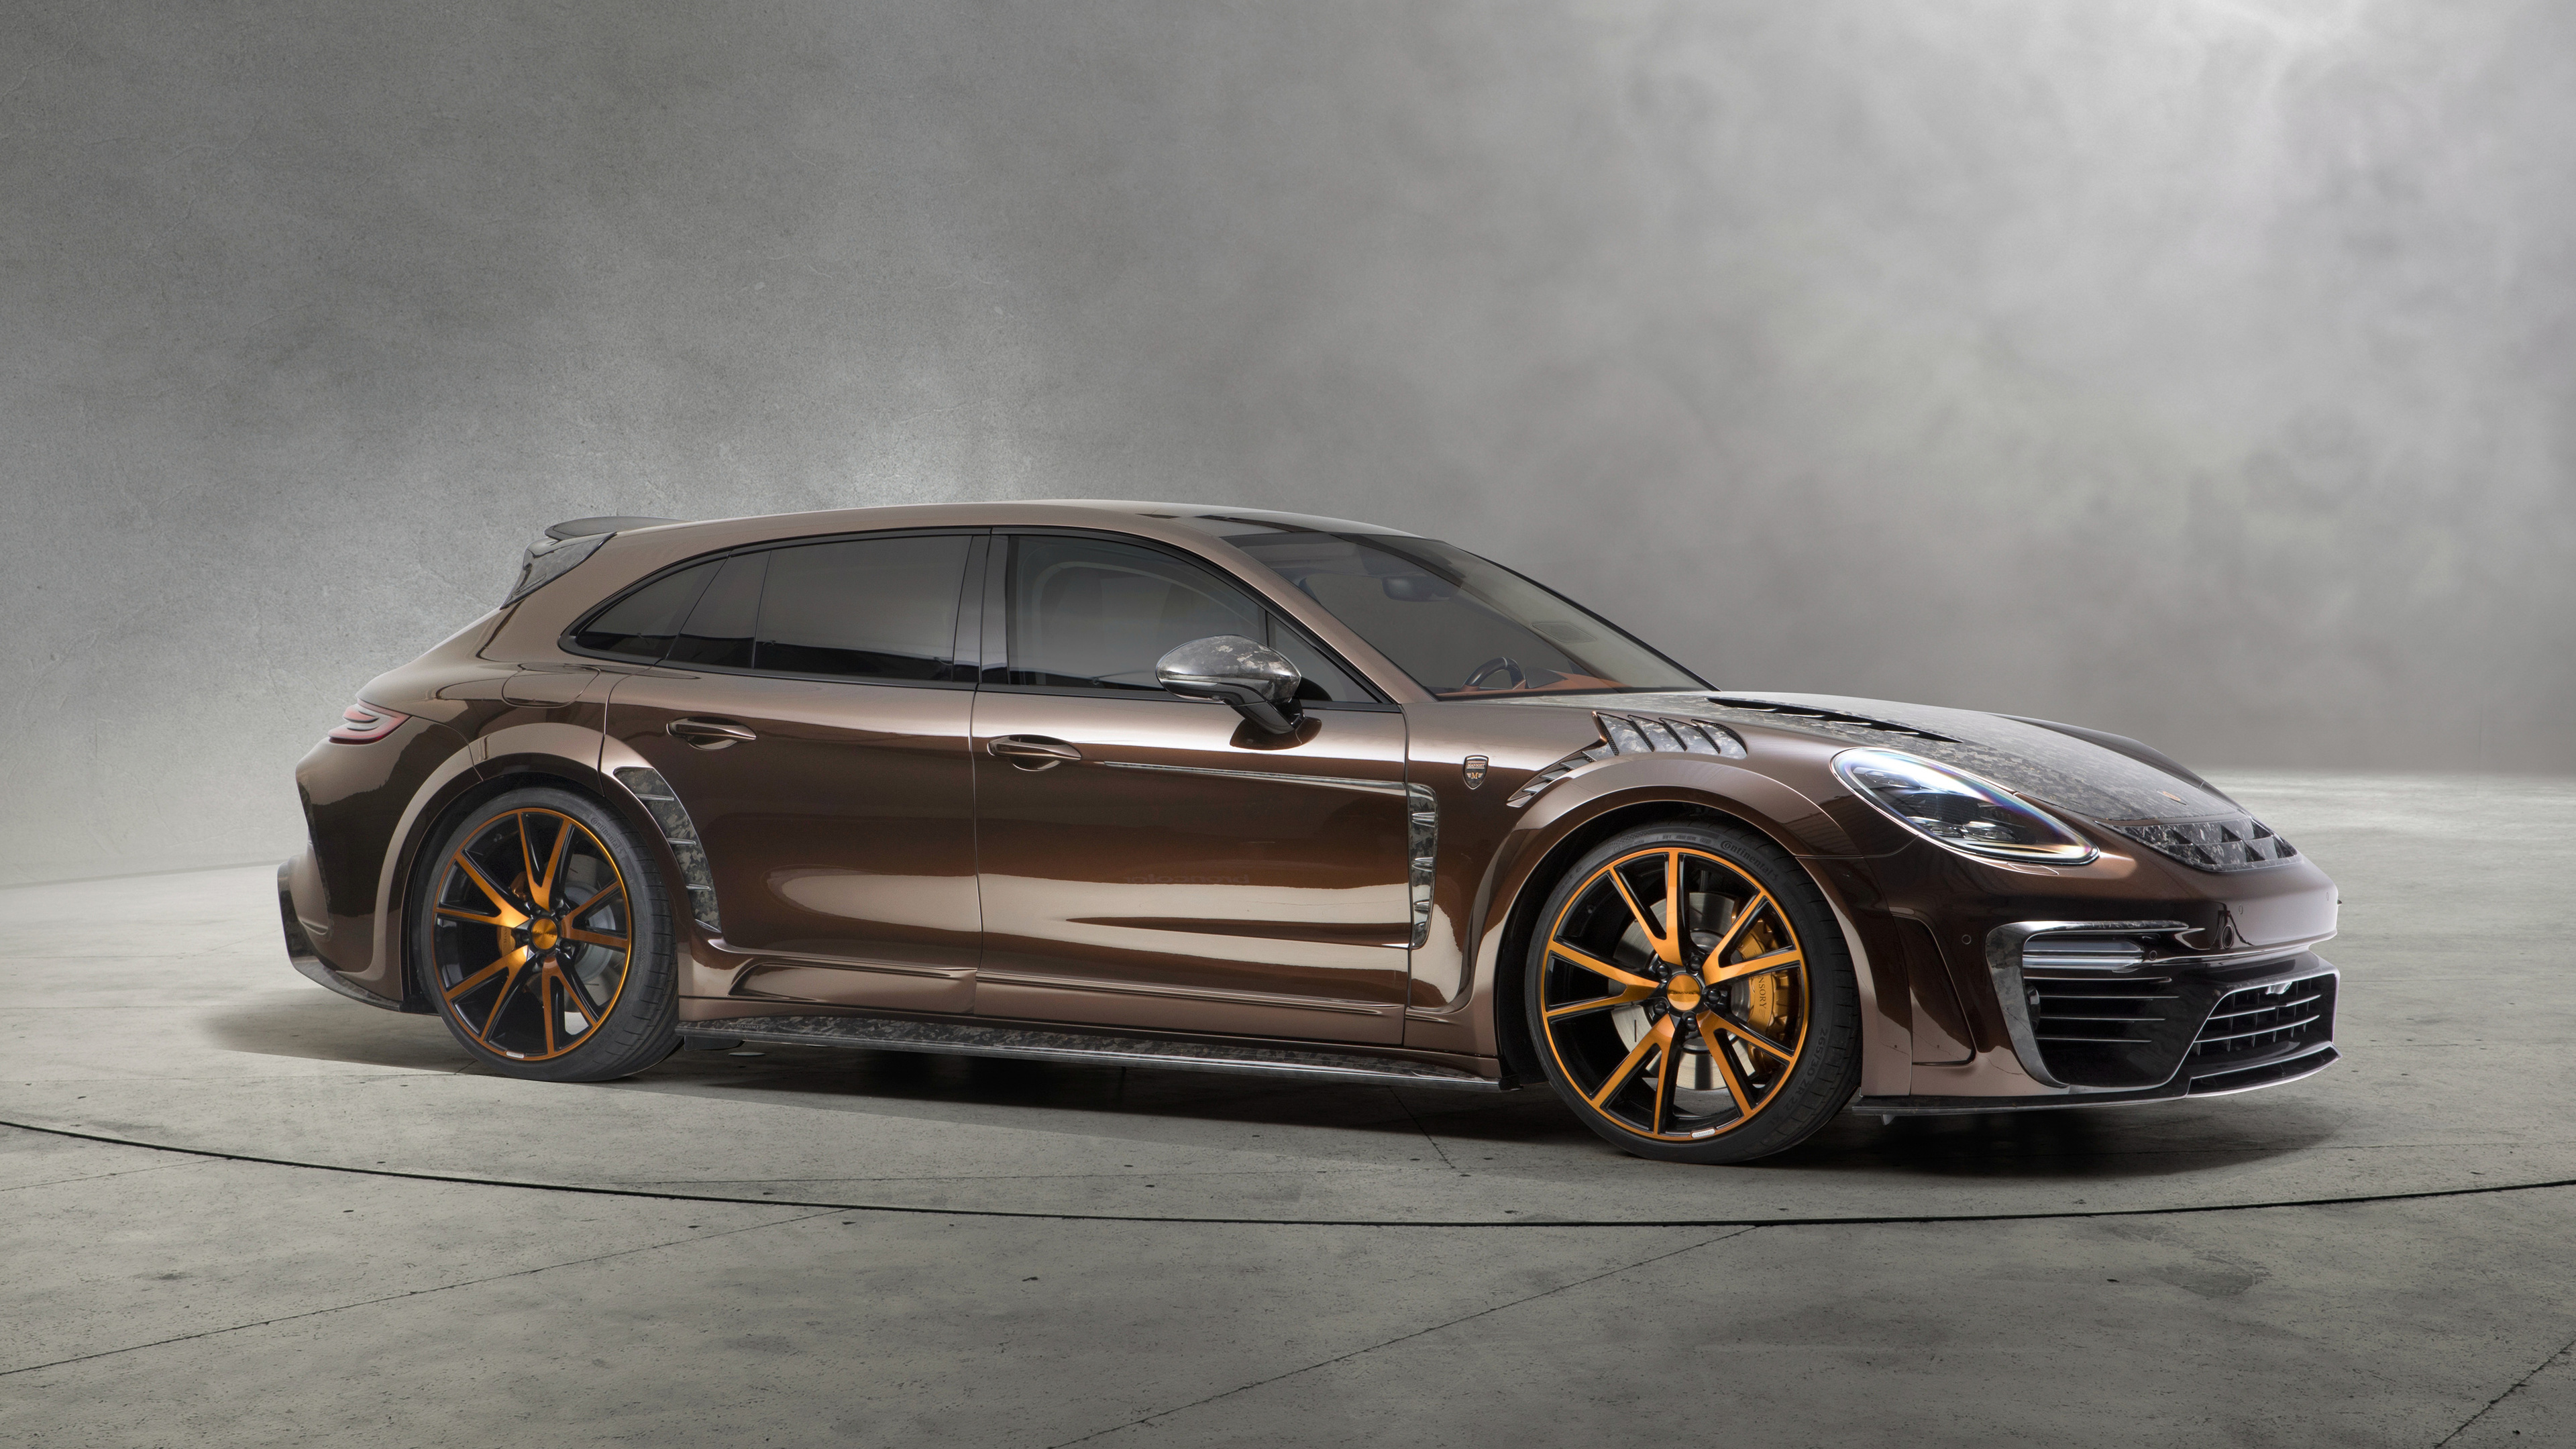 mansory porsche panamera sport turismo 1539110181 - Mansory Porsche Panamera Sport Turismo - porsche wallpapers, porsche panamera wallpapers, mansory wallpapers, hd-wallpapers, cars wallpapers, 4k-wallpapers, 2018 cars wallpapers